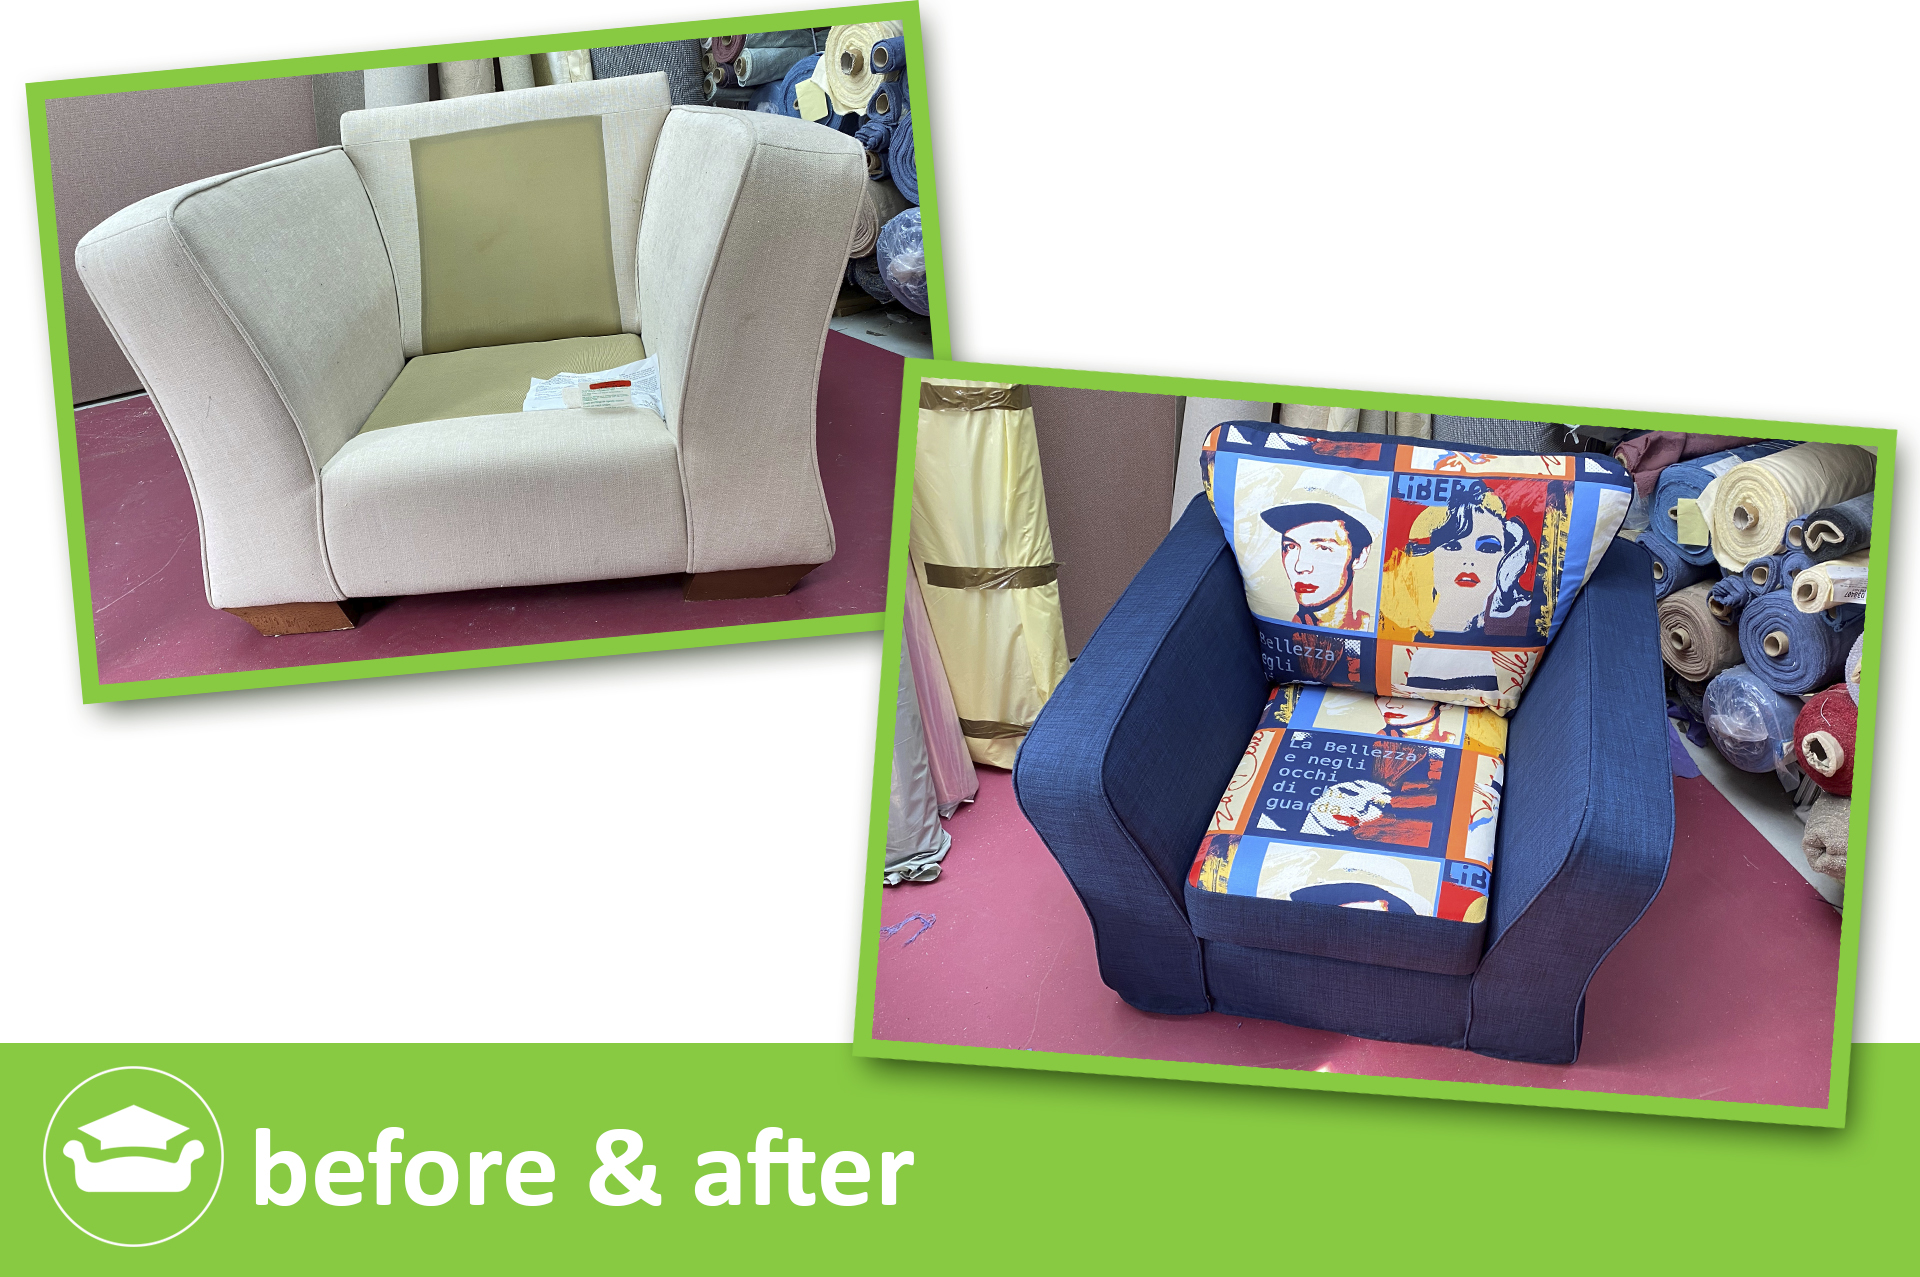 learn loose covers for a marks&spencer style chair